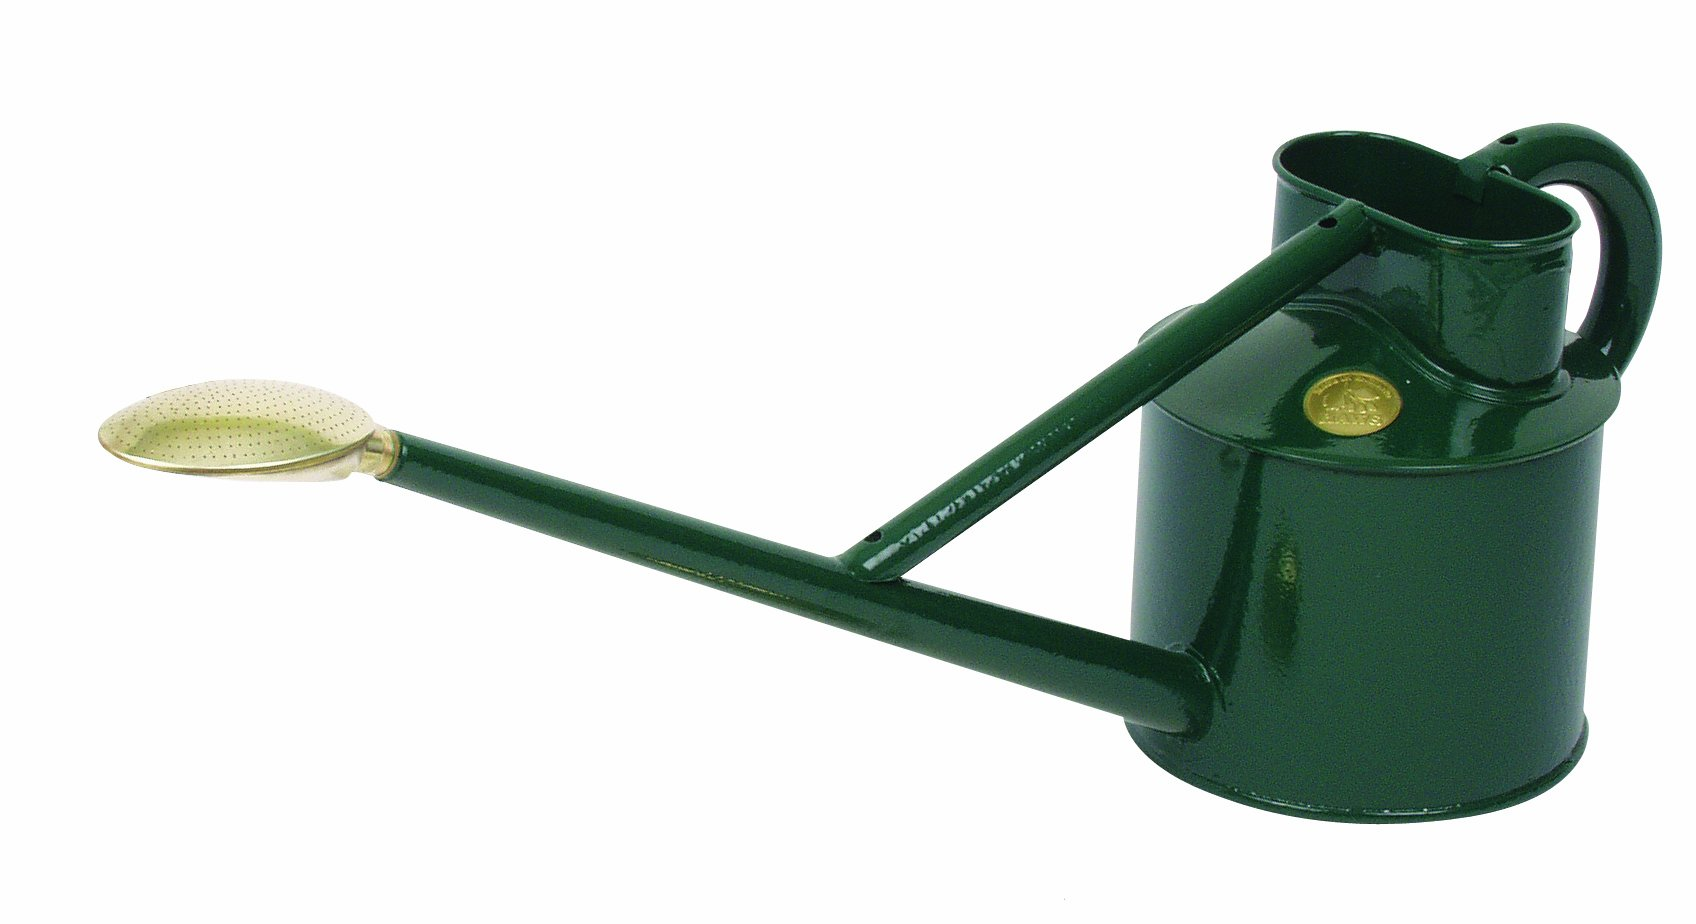 Haws Professional Metal Watering Can, 0.9-Gallon/3.5-Liter, Green